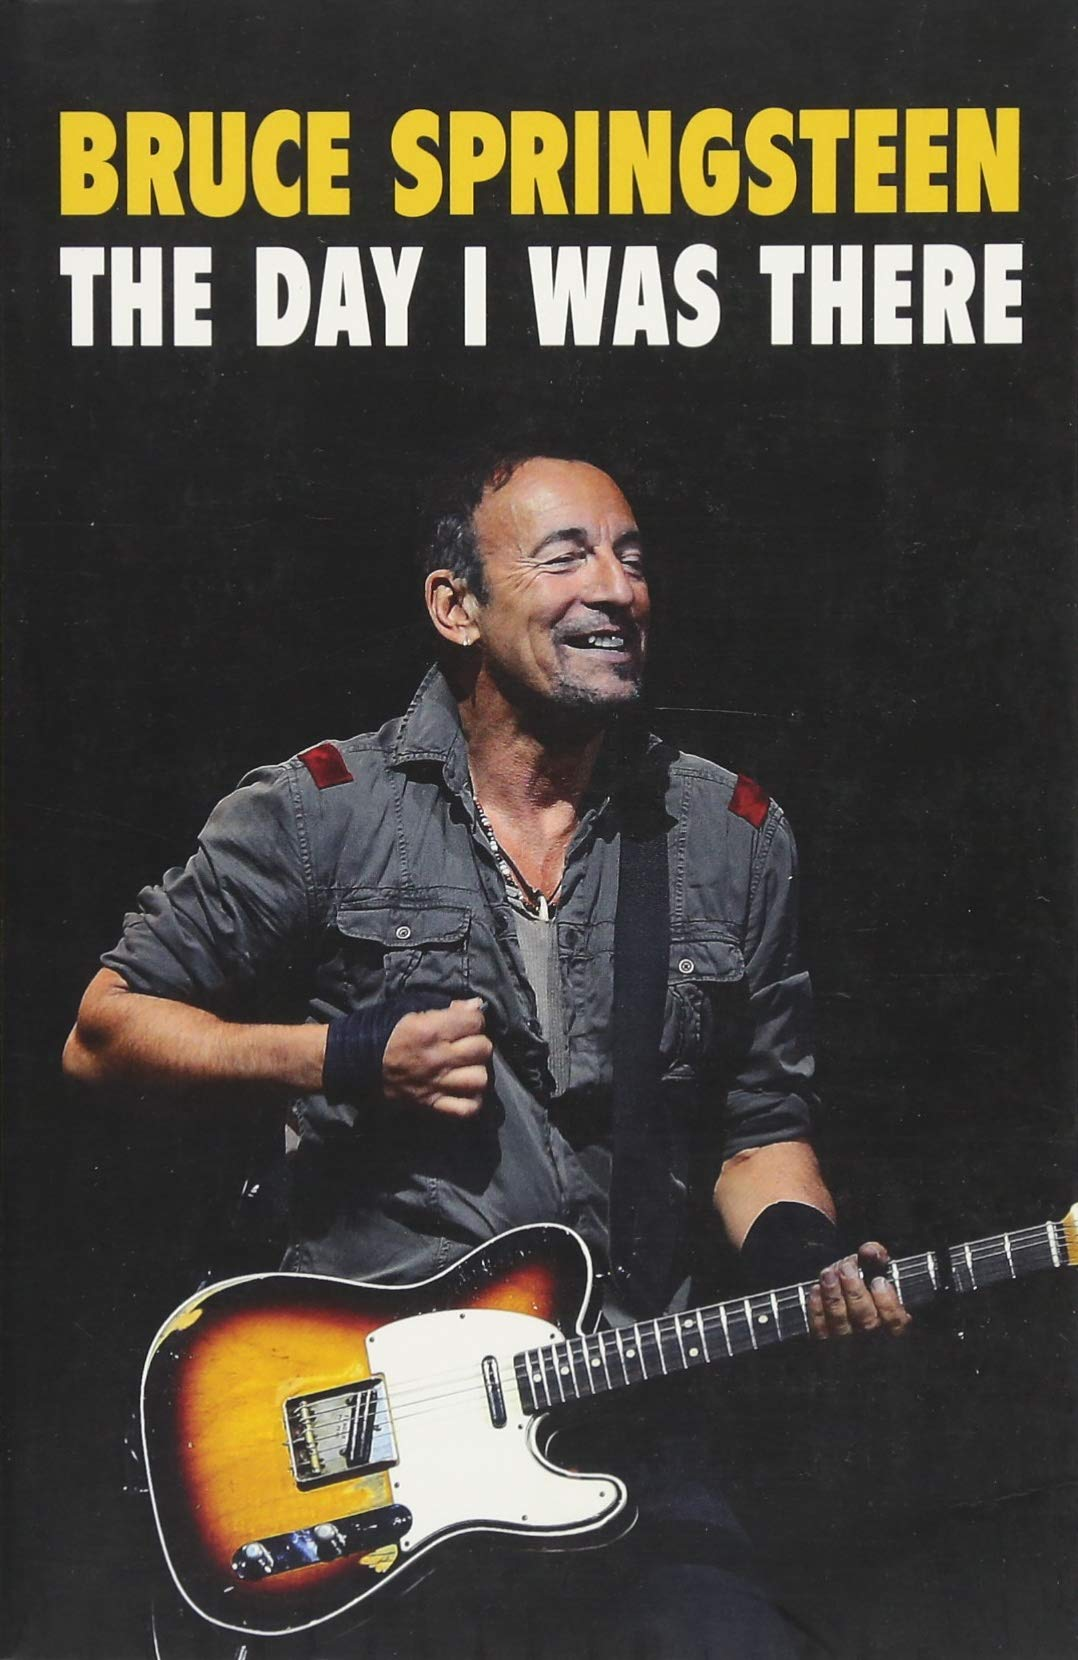 Bruce Springsteen - The Day I Was There: Over 250 accounts from fans that have witnessed a Bruce Springsteen live show pdf